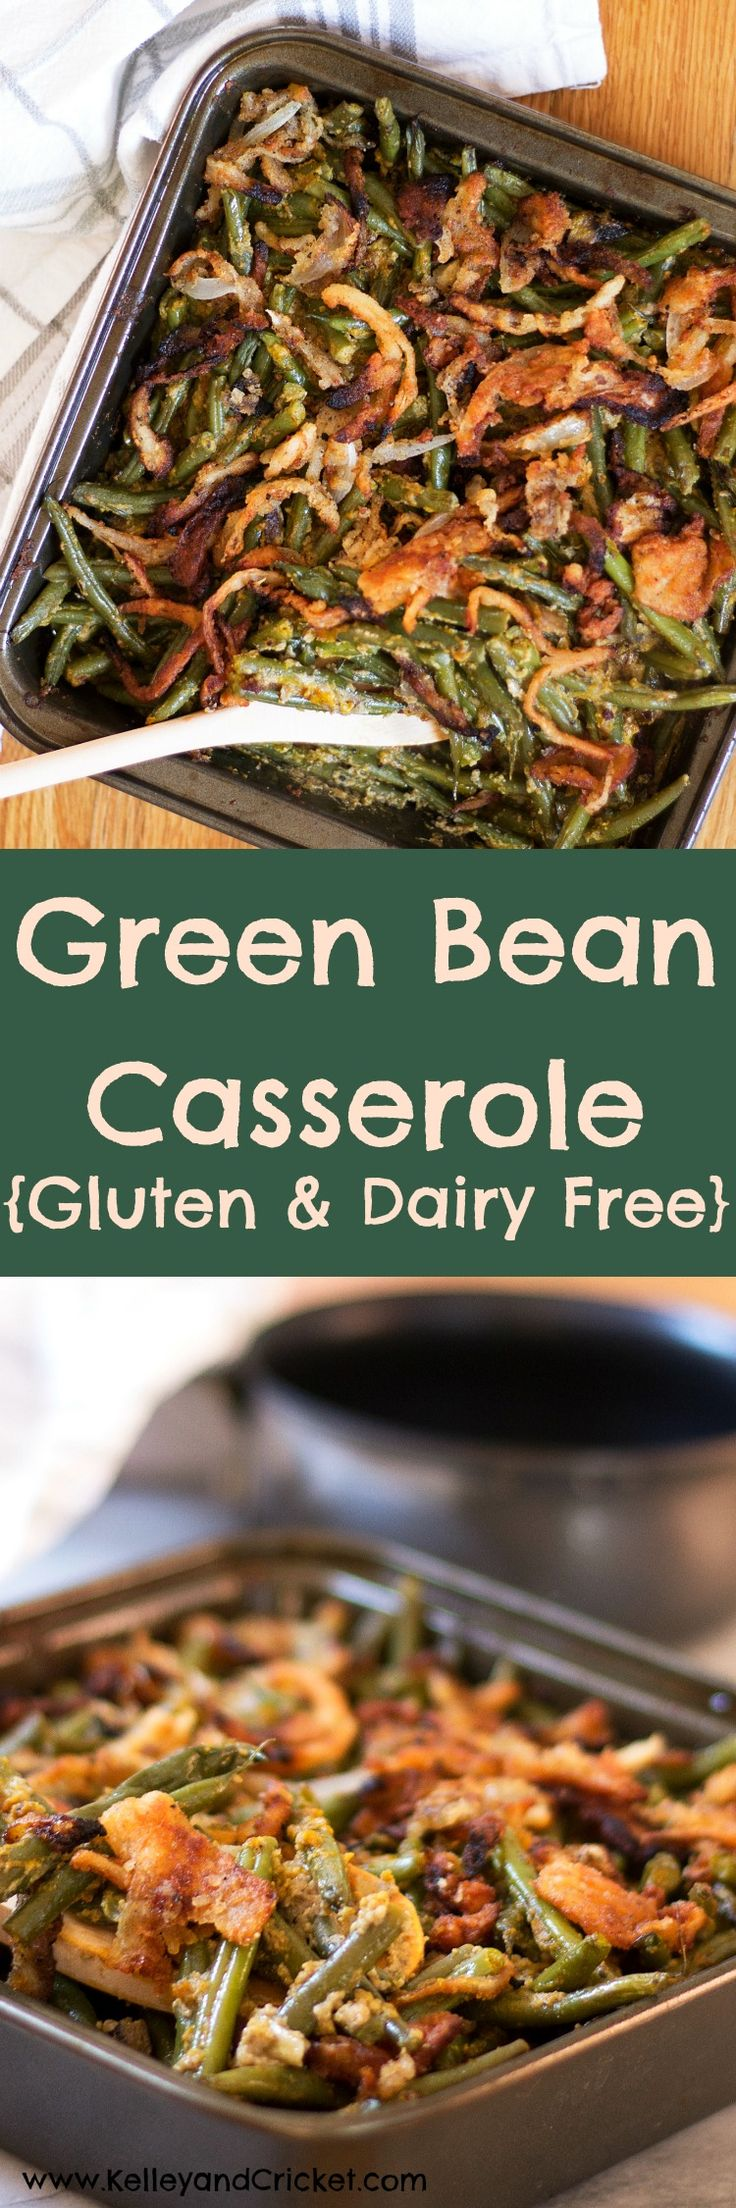 This Green Bean Casserole is so creamy and crunchy (thanks to the homemade French Fried Onions) and better than the original! You'll never guess it's gluten-free, grain-free, dairy-free, and paleo!